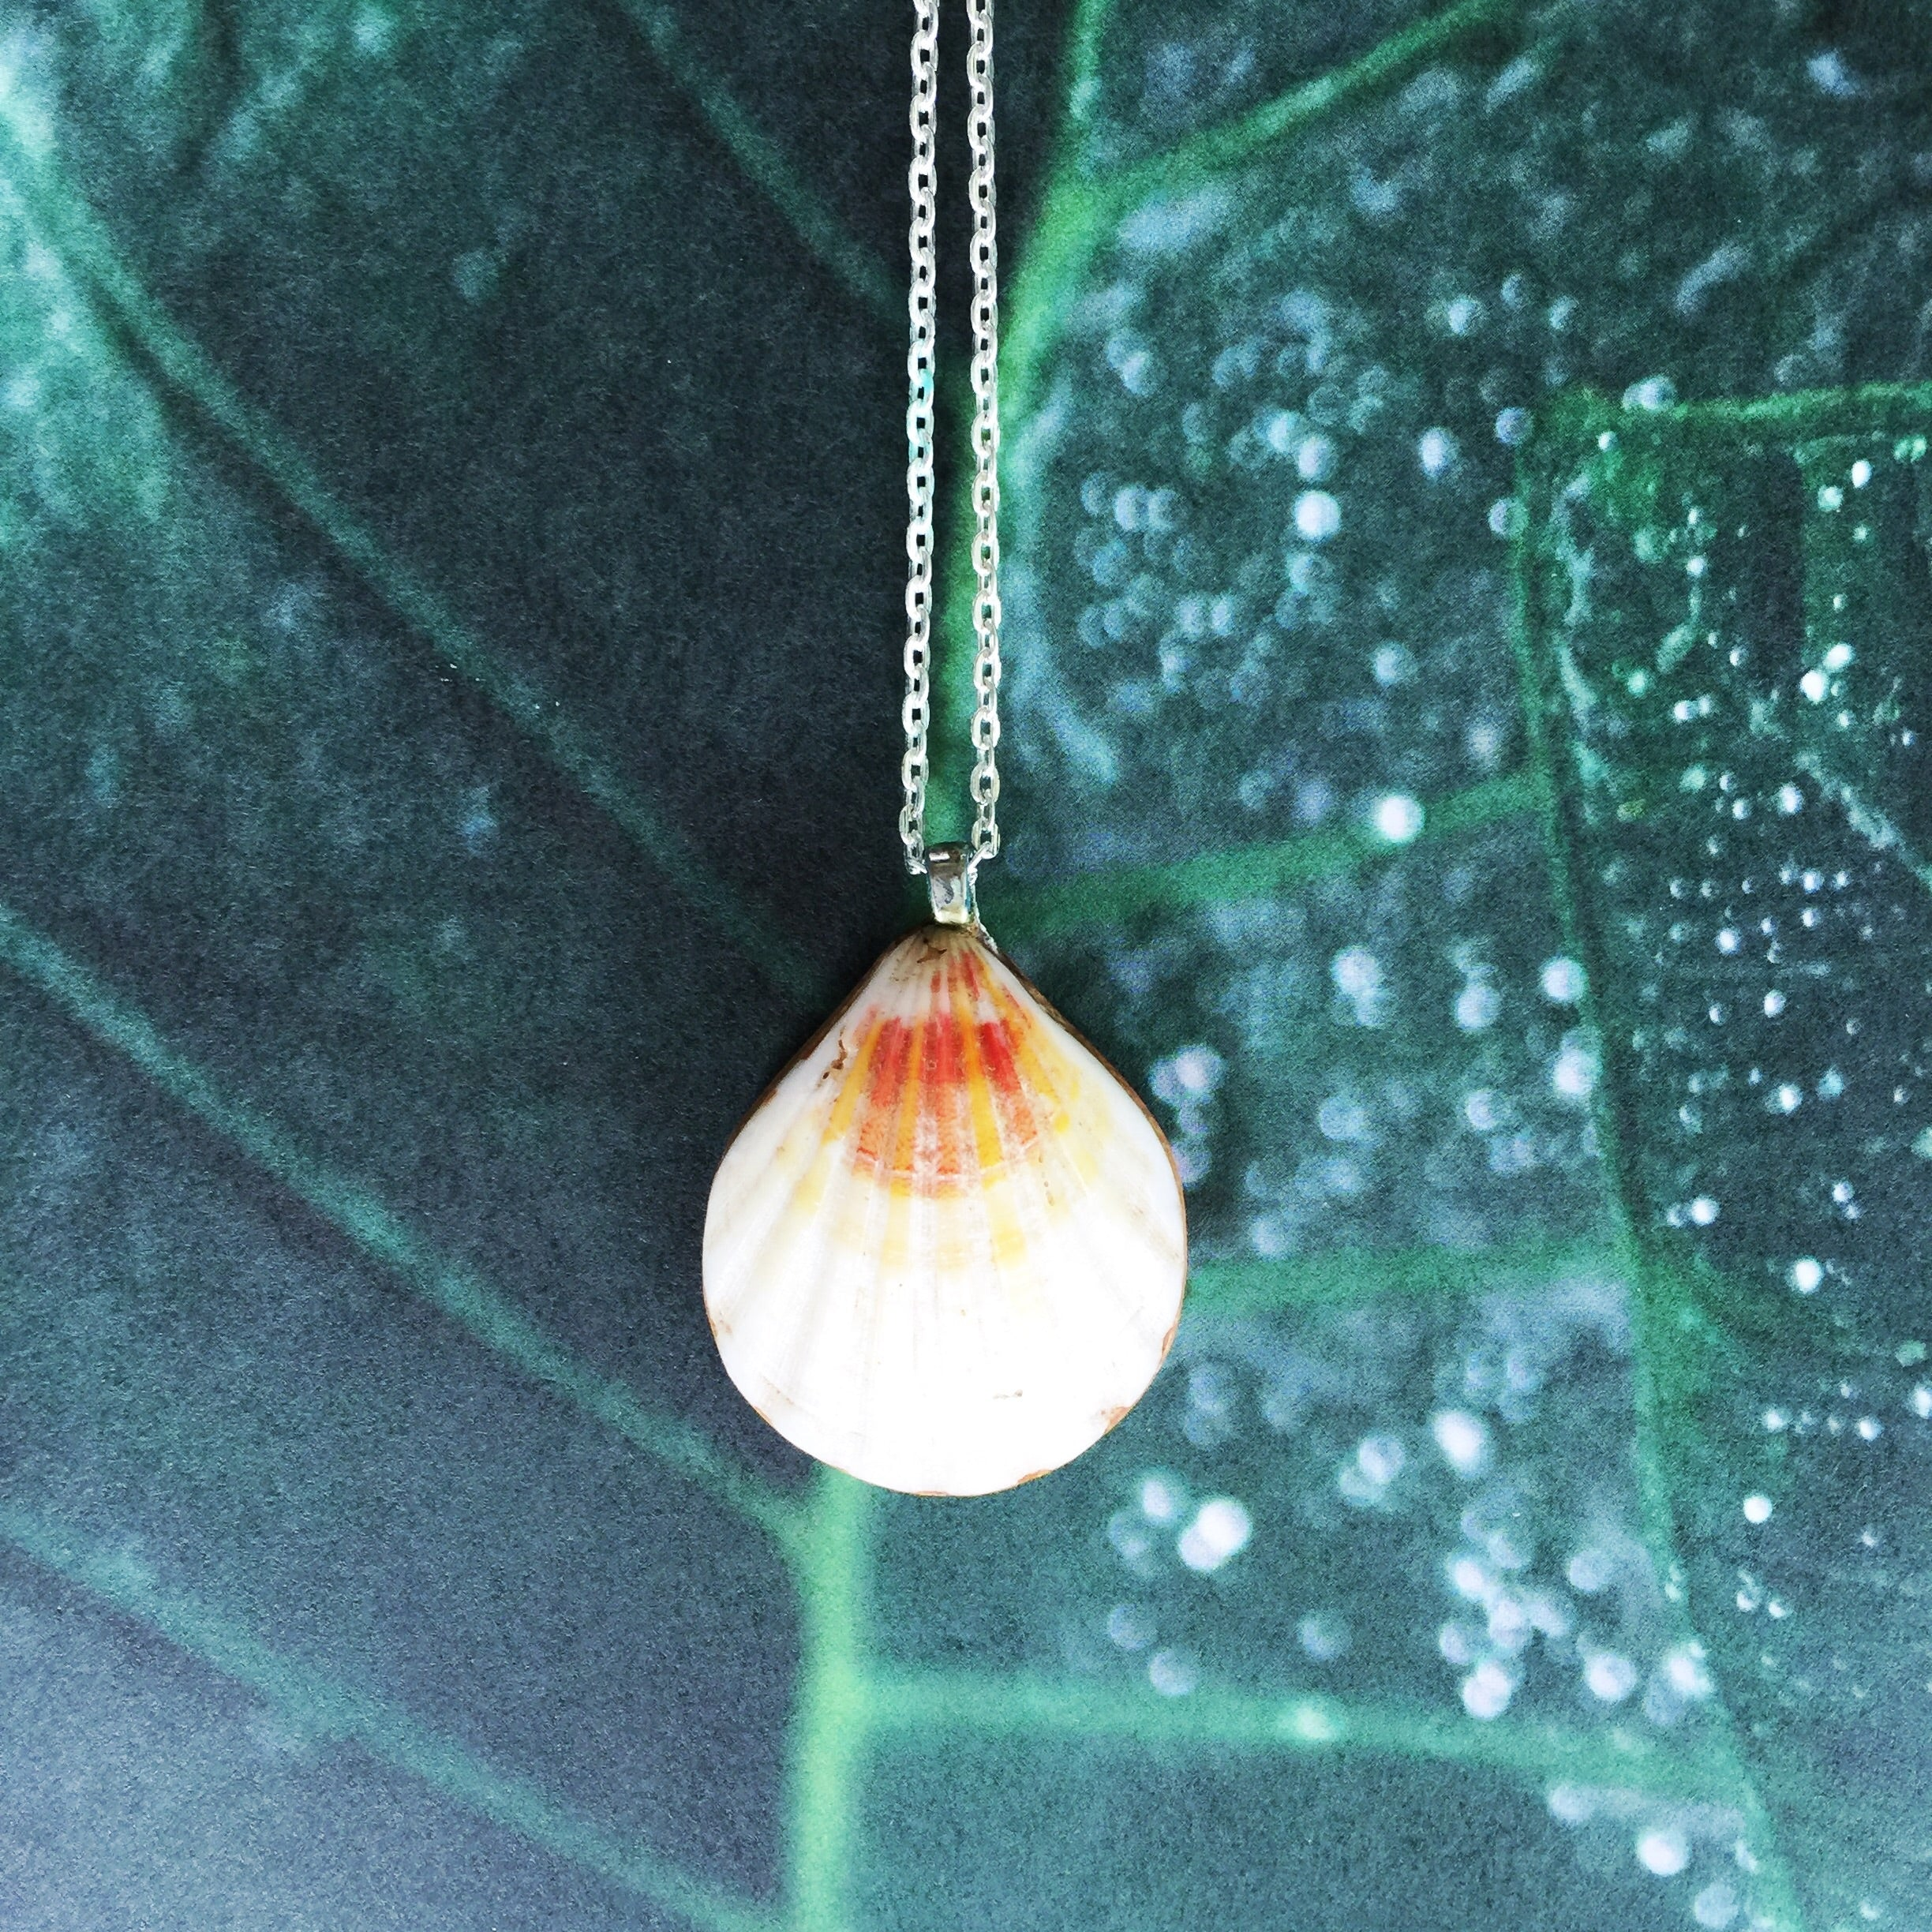 Sunrise Shell Necklaces| Hawaiian Sunrise/Moonrise Shell pendants| Beach Jewelry|20 - Honorooroo Lifestyle